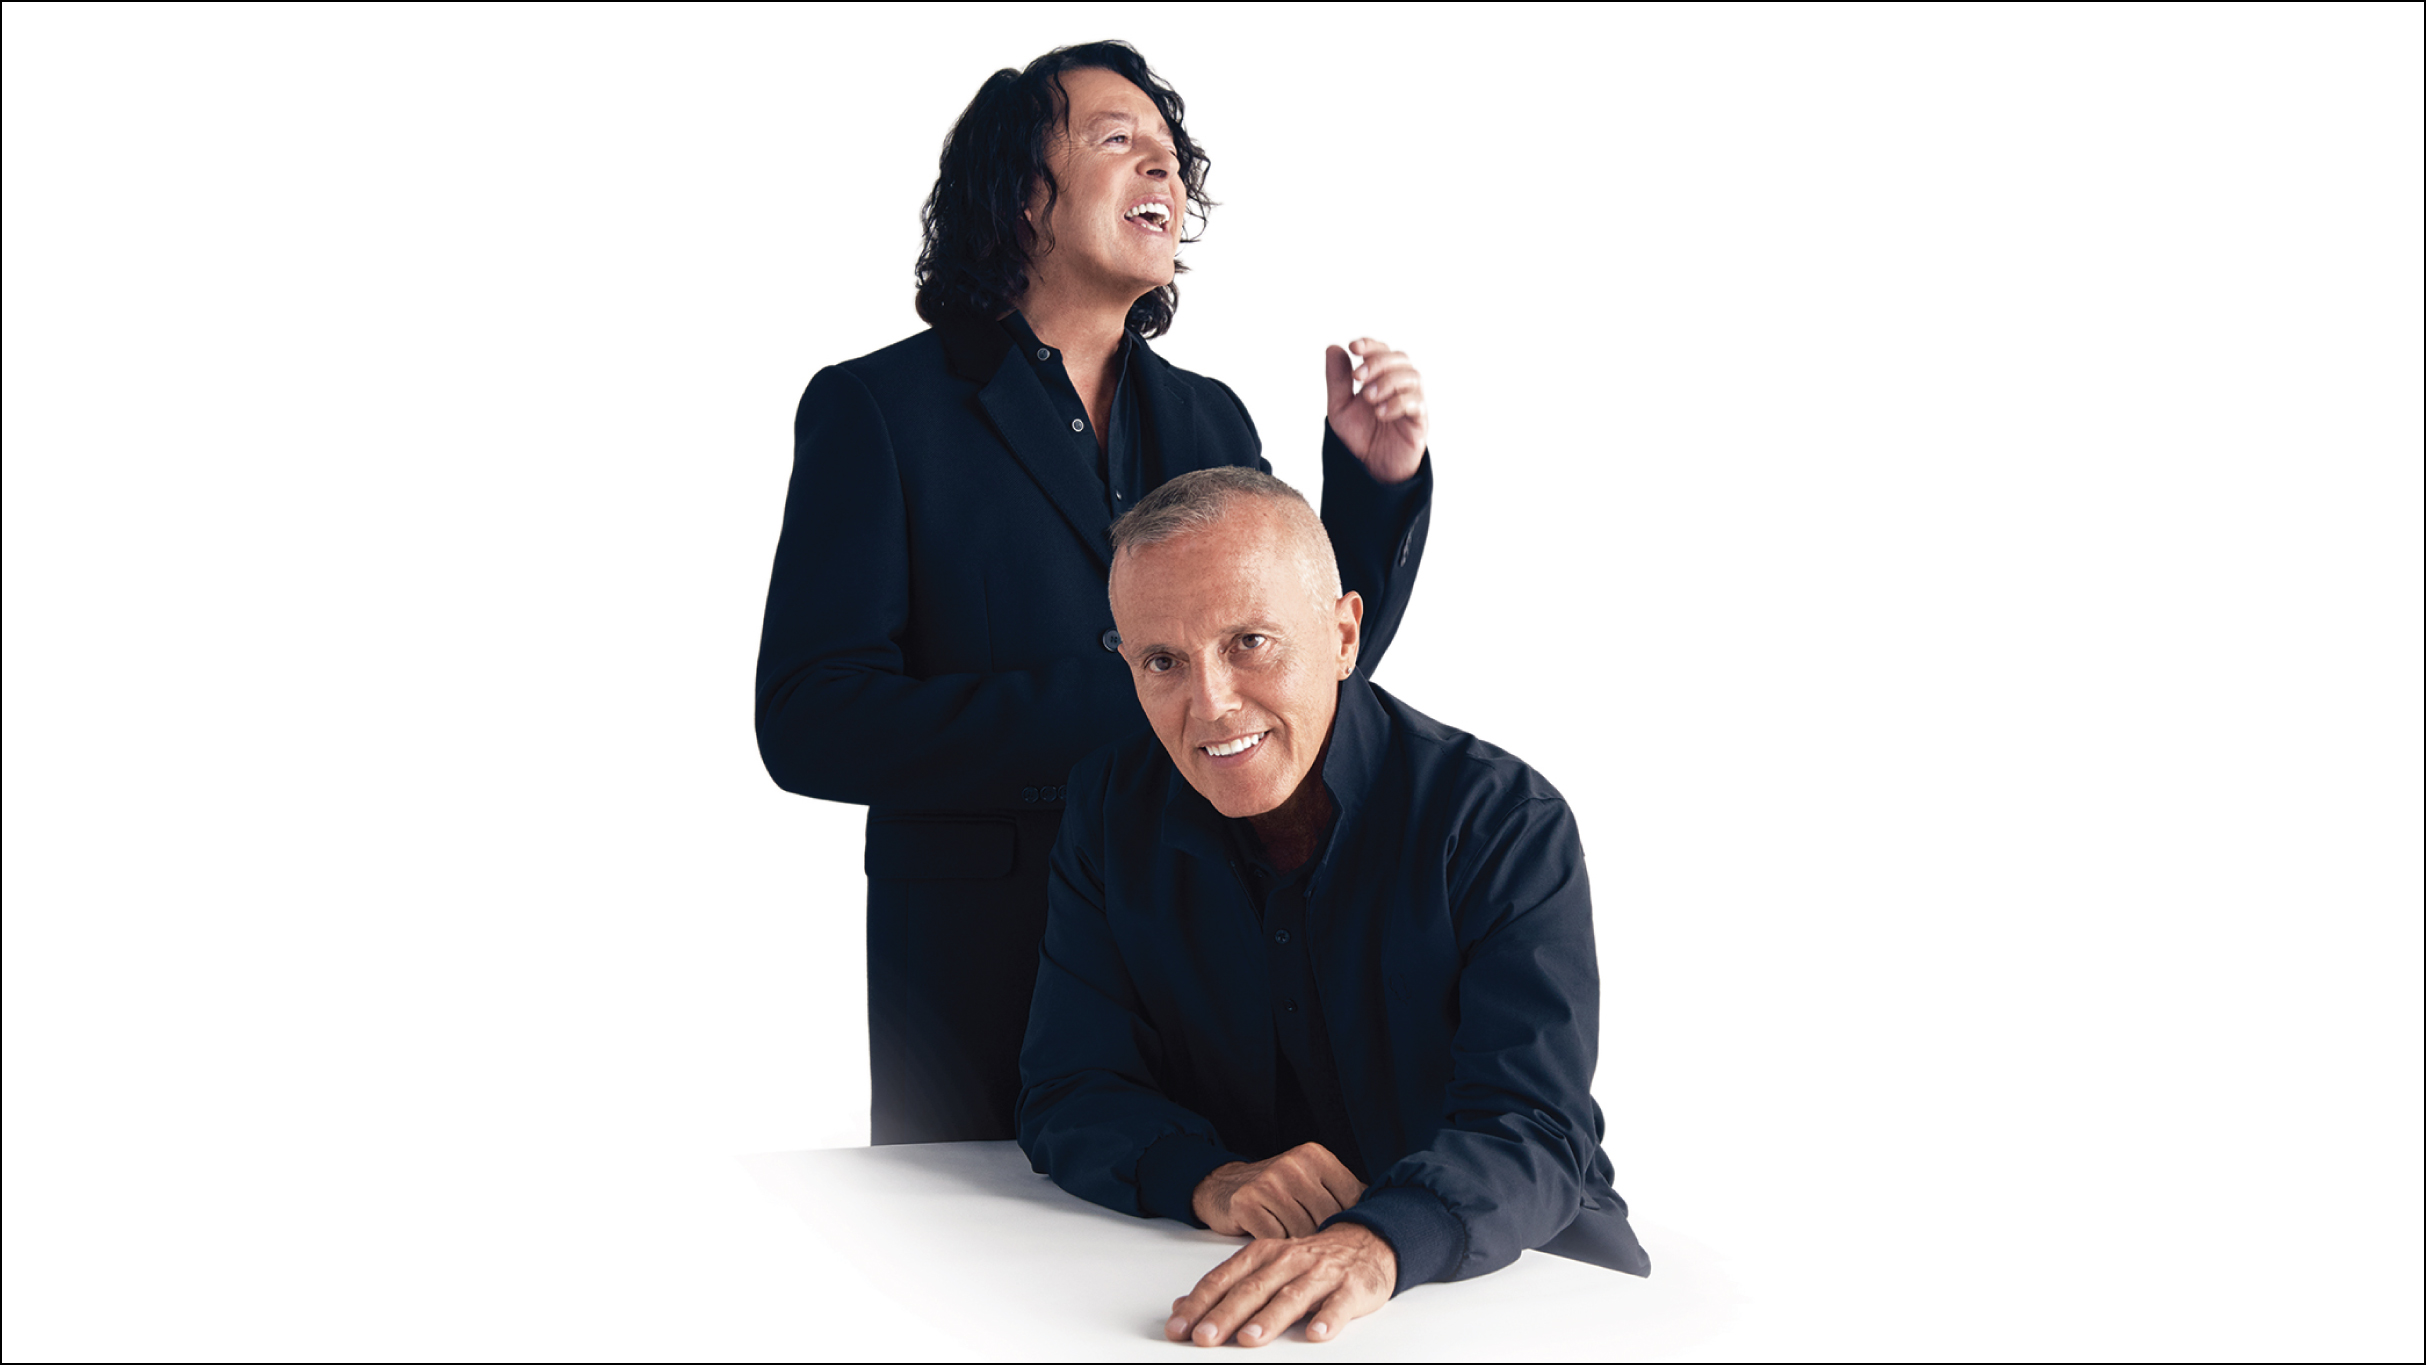 Tears for Fears bring their Rule The World show to the INEC Killarney on January 30th 2018